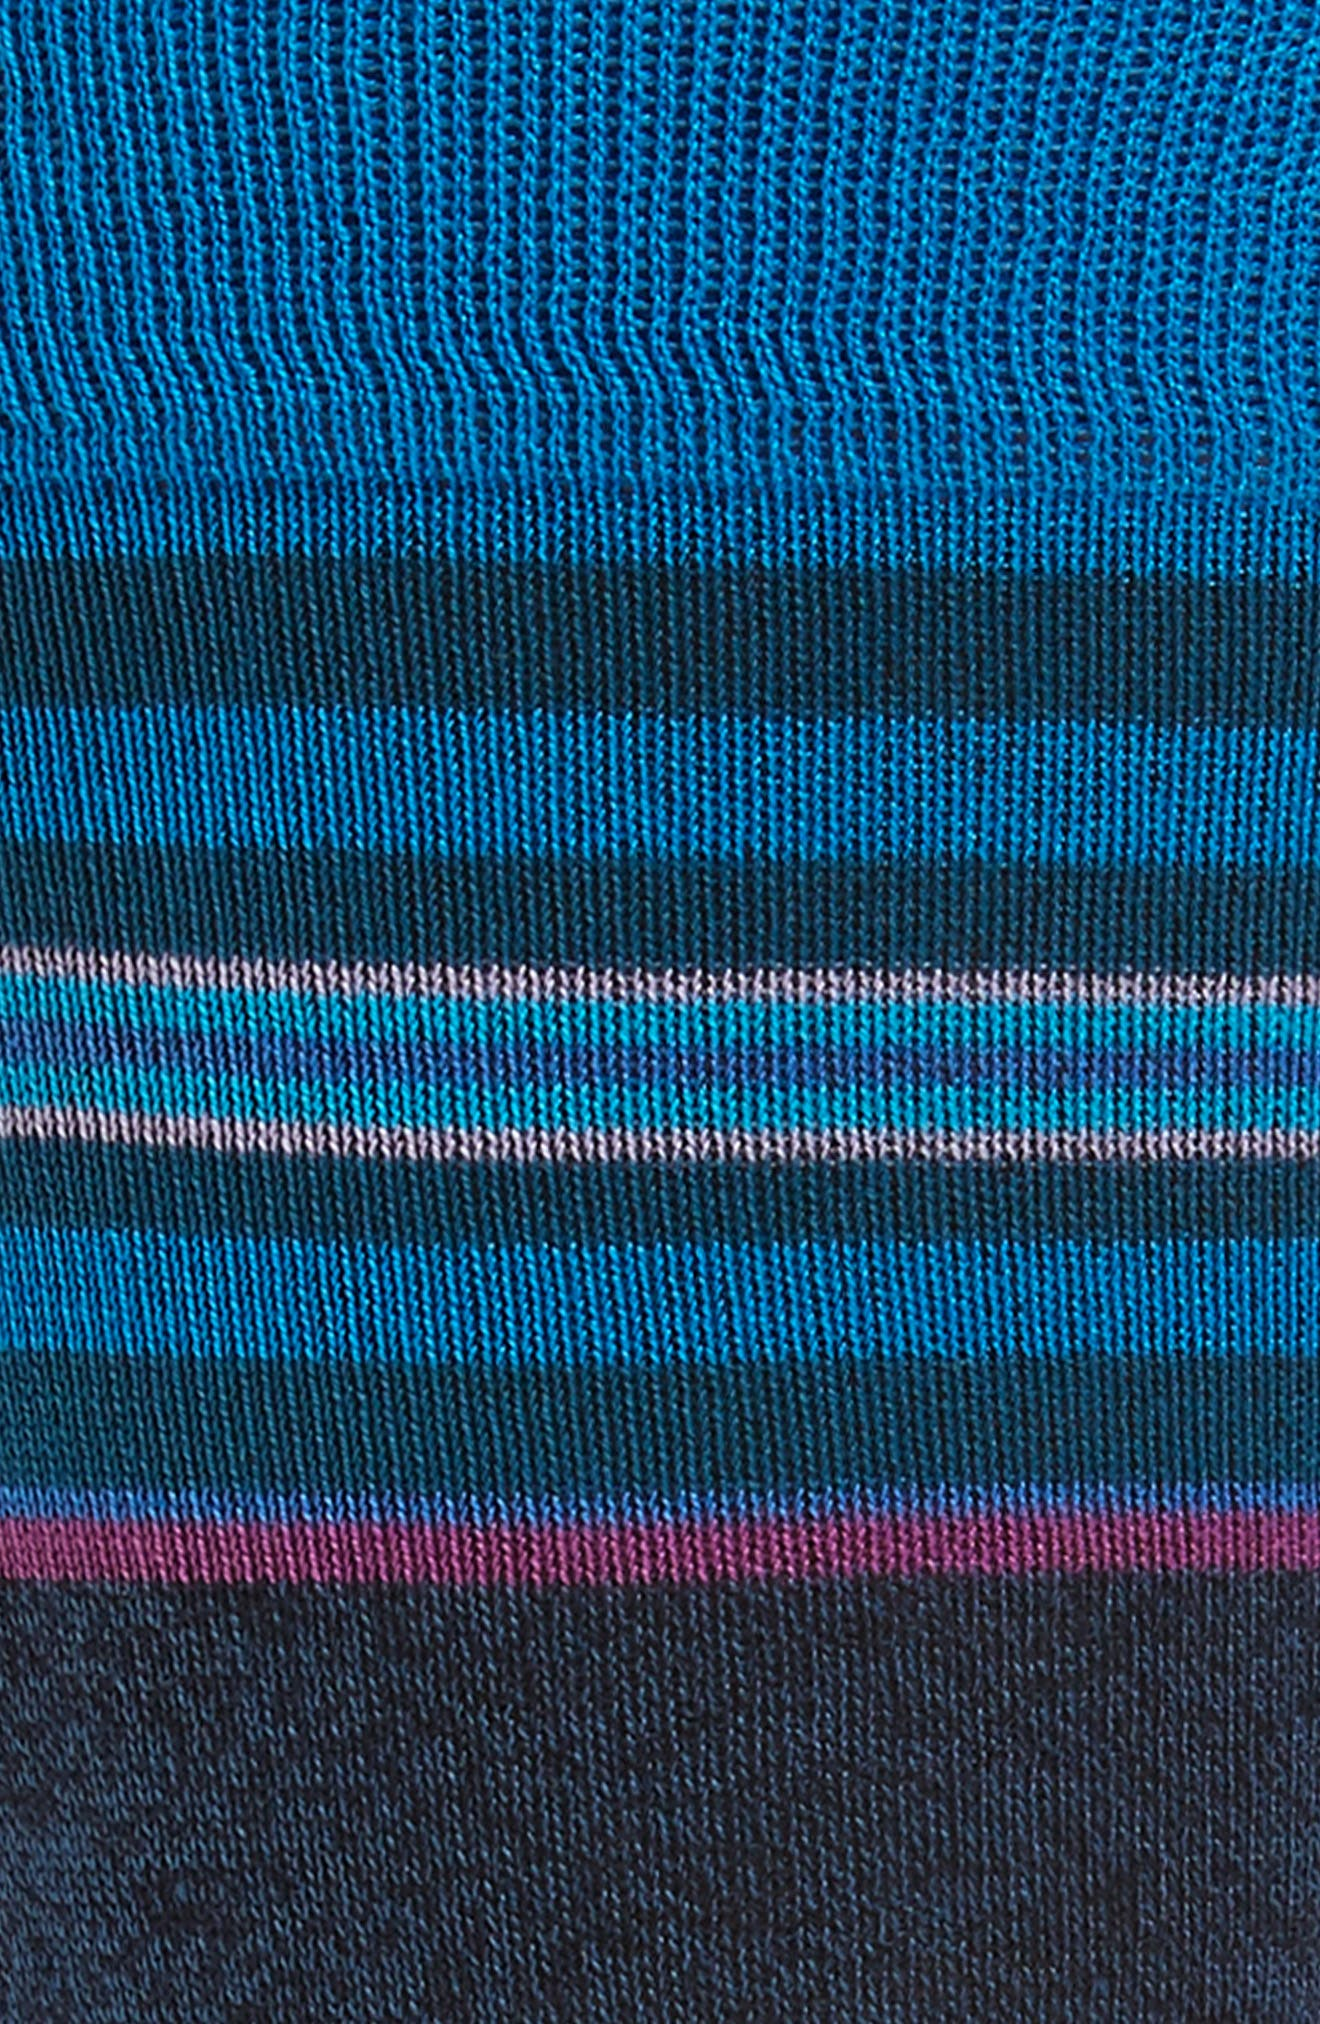 Striped Socks,                             Alternate thumbnail 2, color,                             427